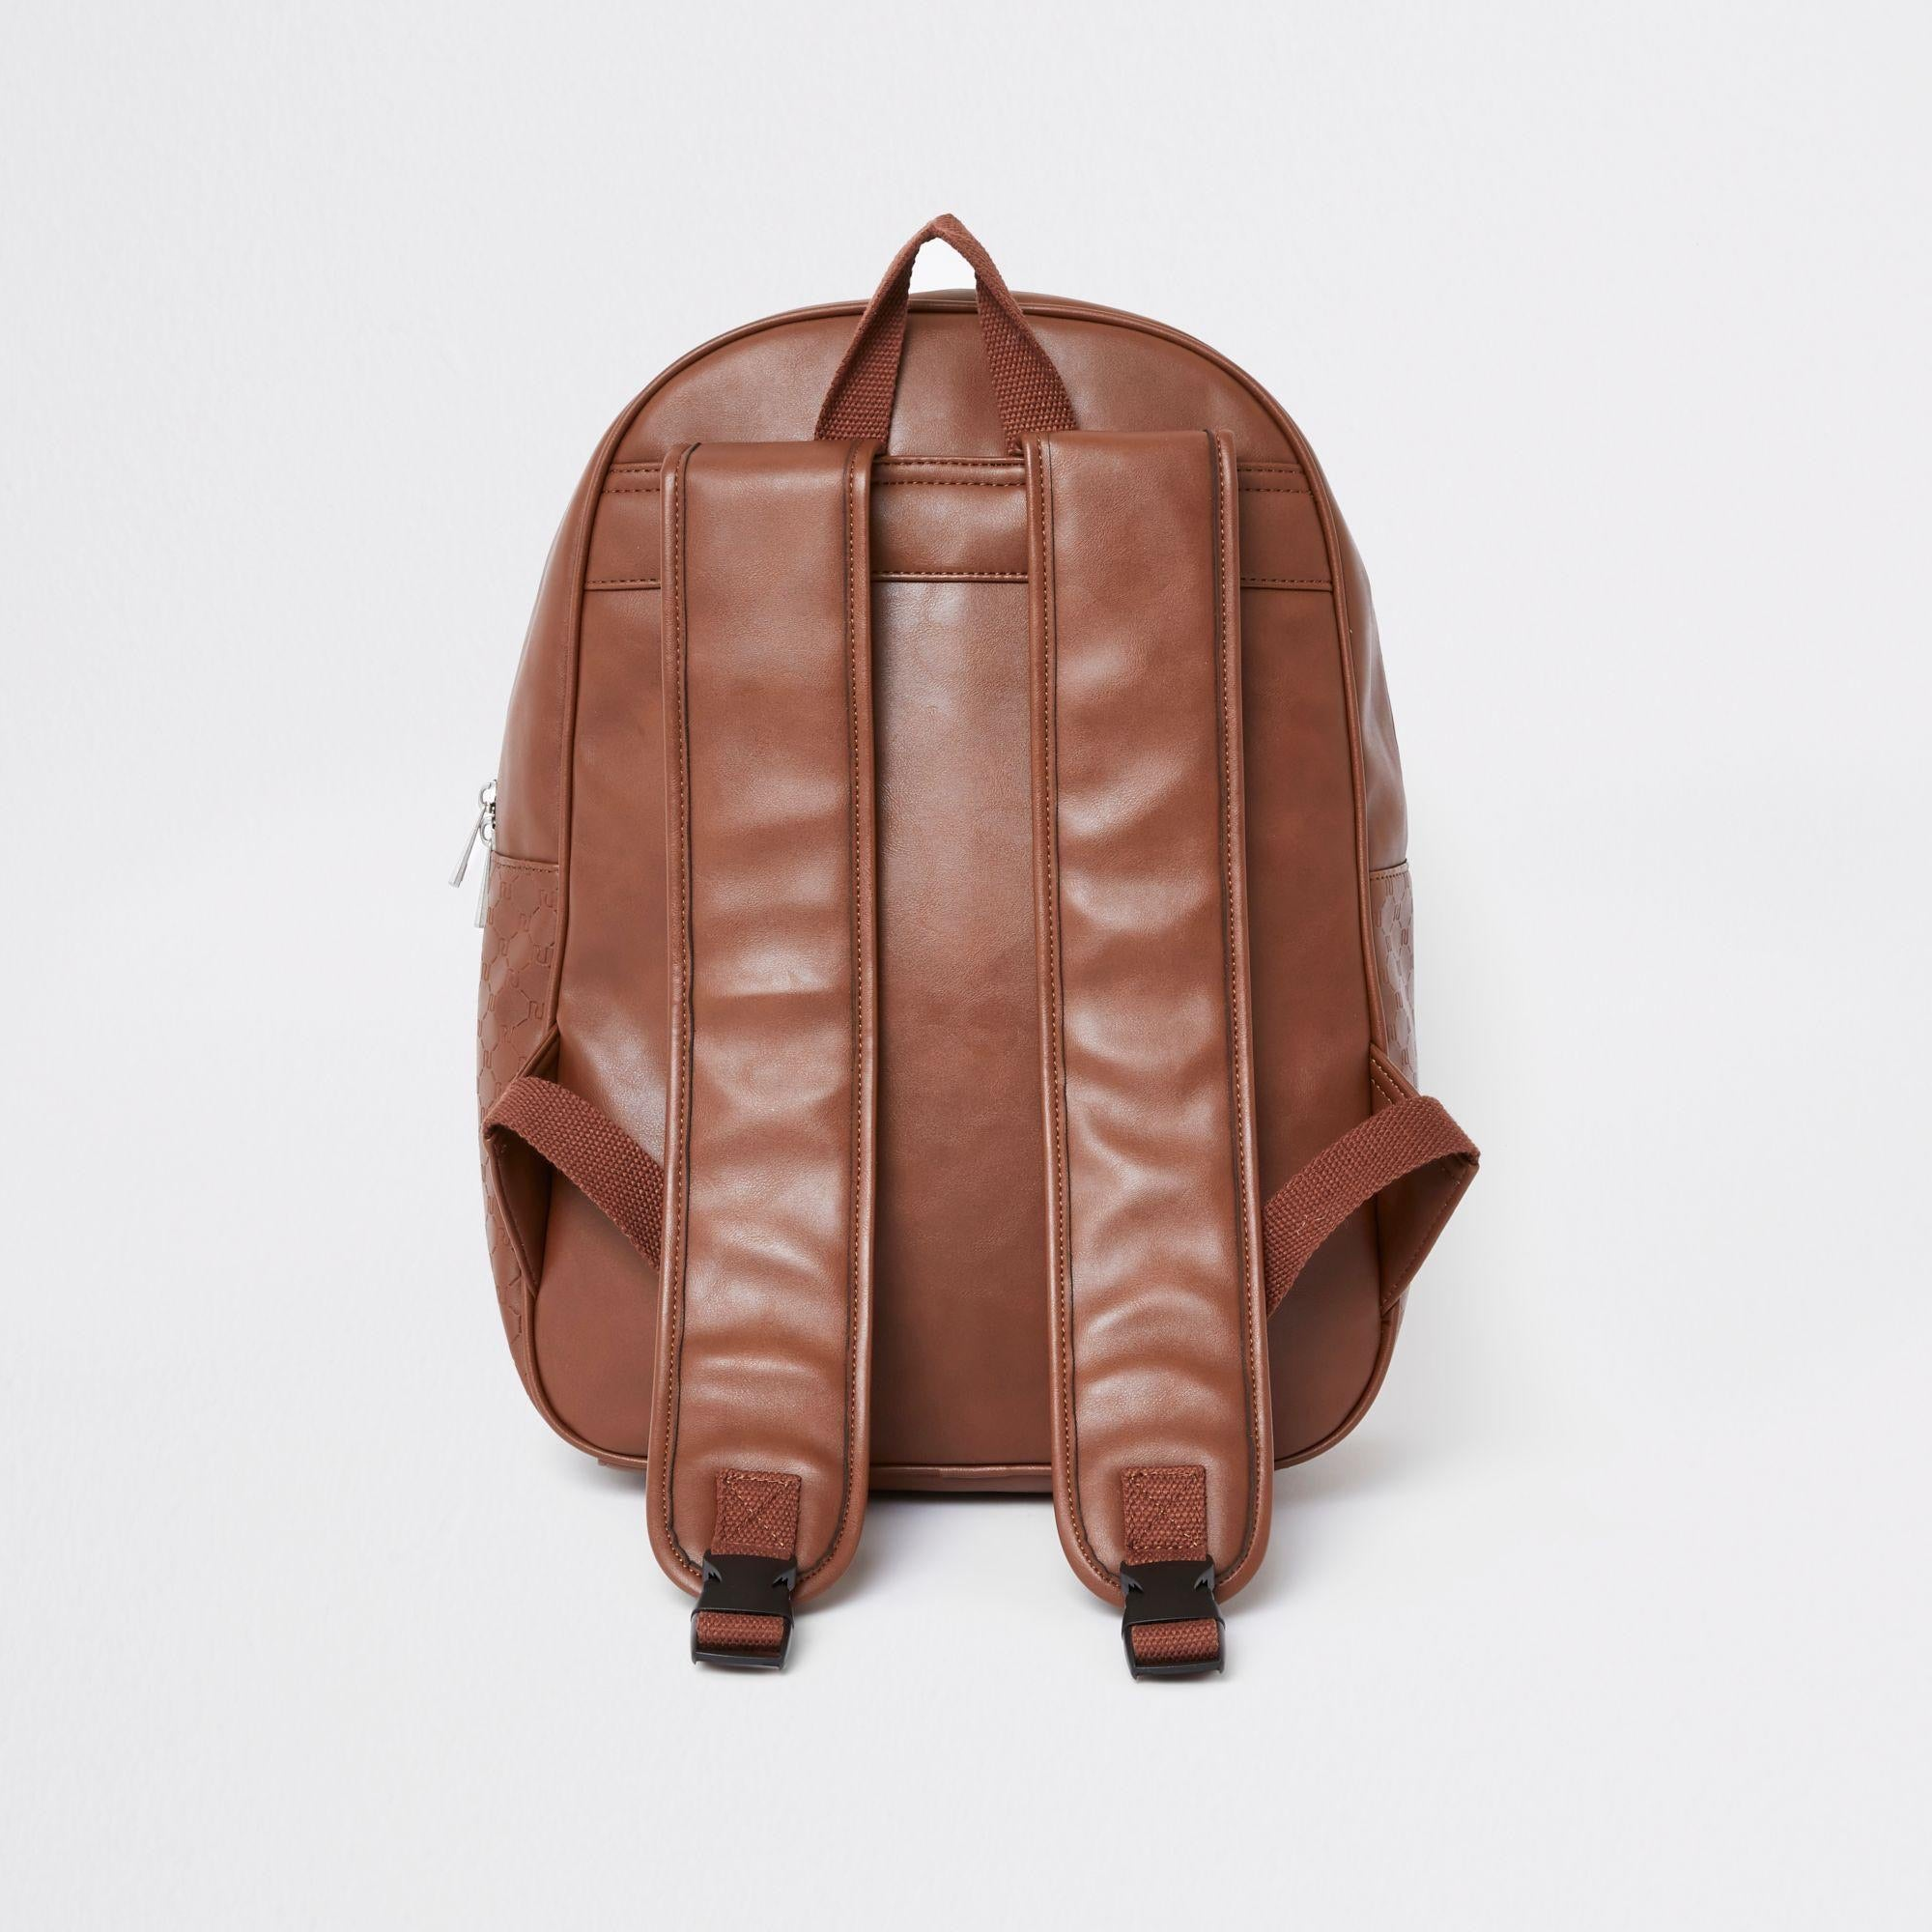 RIVER ISLAND MONOGRAM TRIM BACKPACK